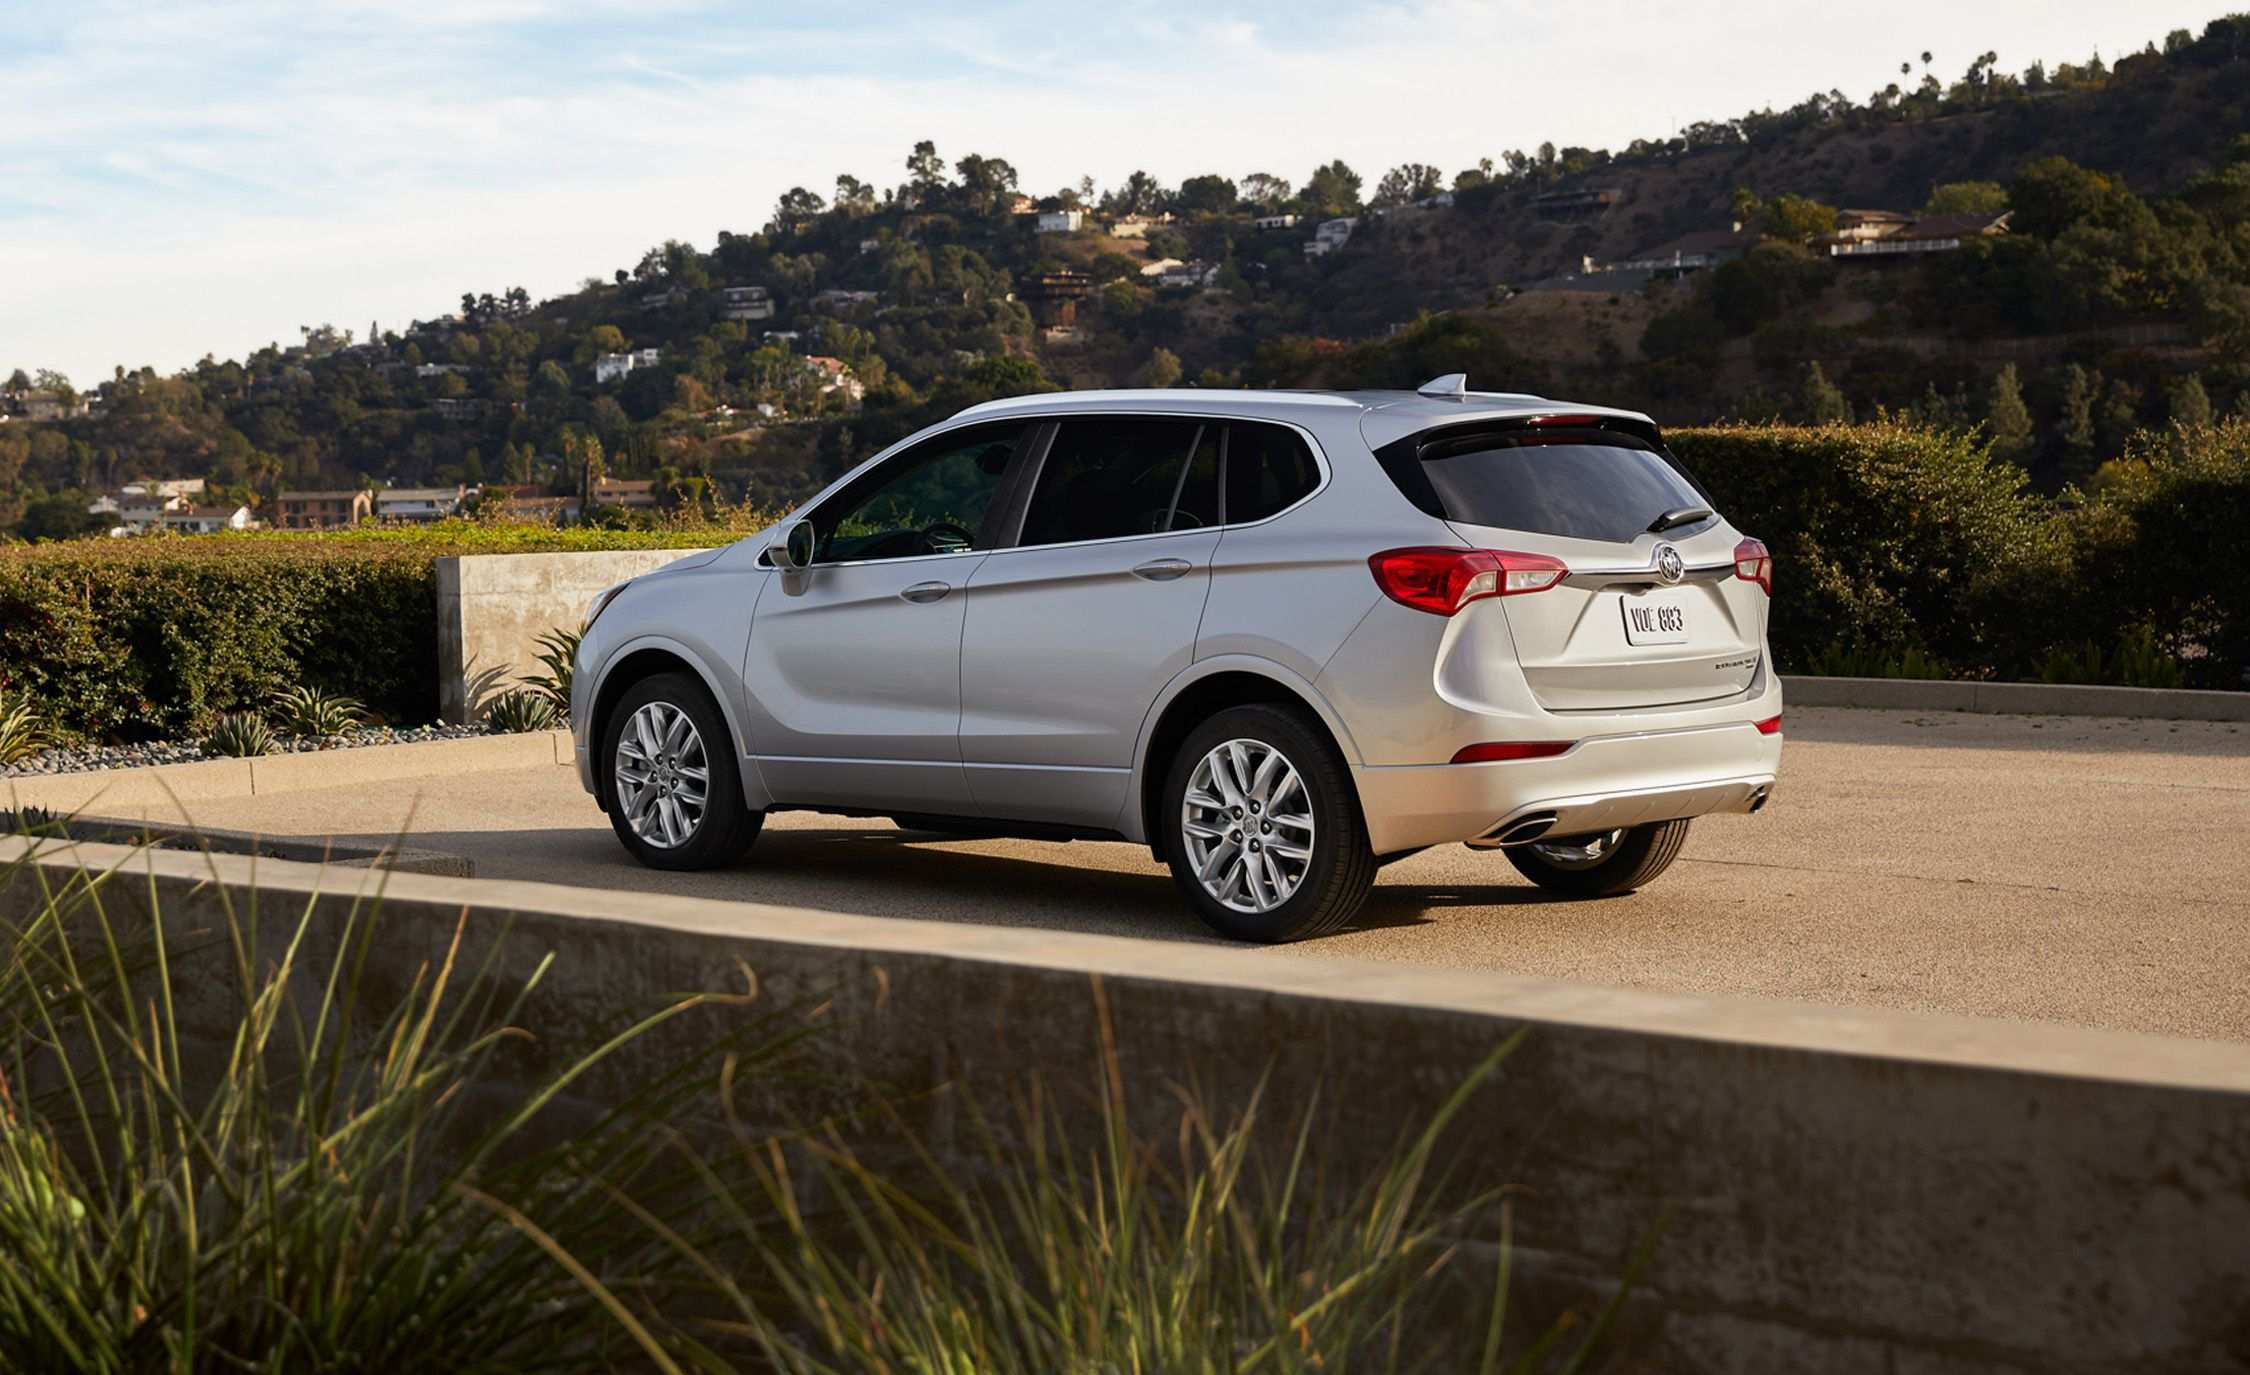 76 All New 2019 Buick Envision Redesign And Review